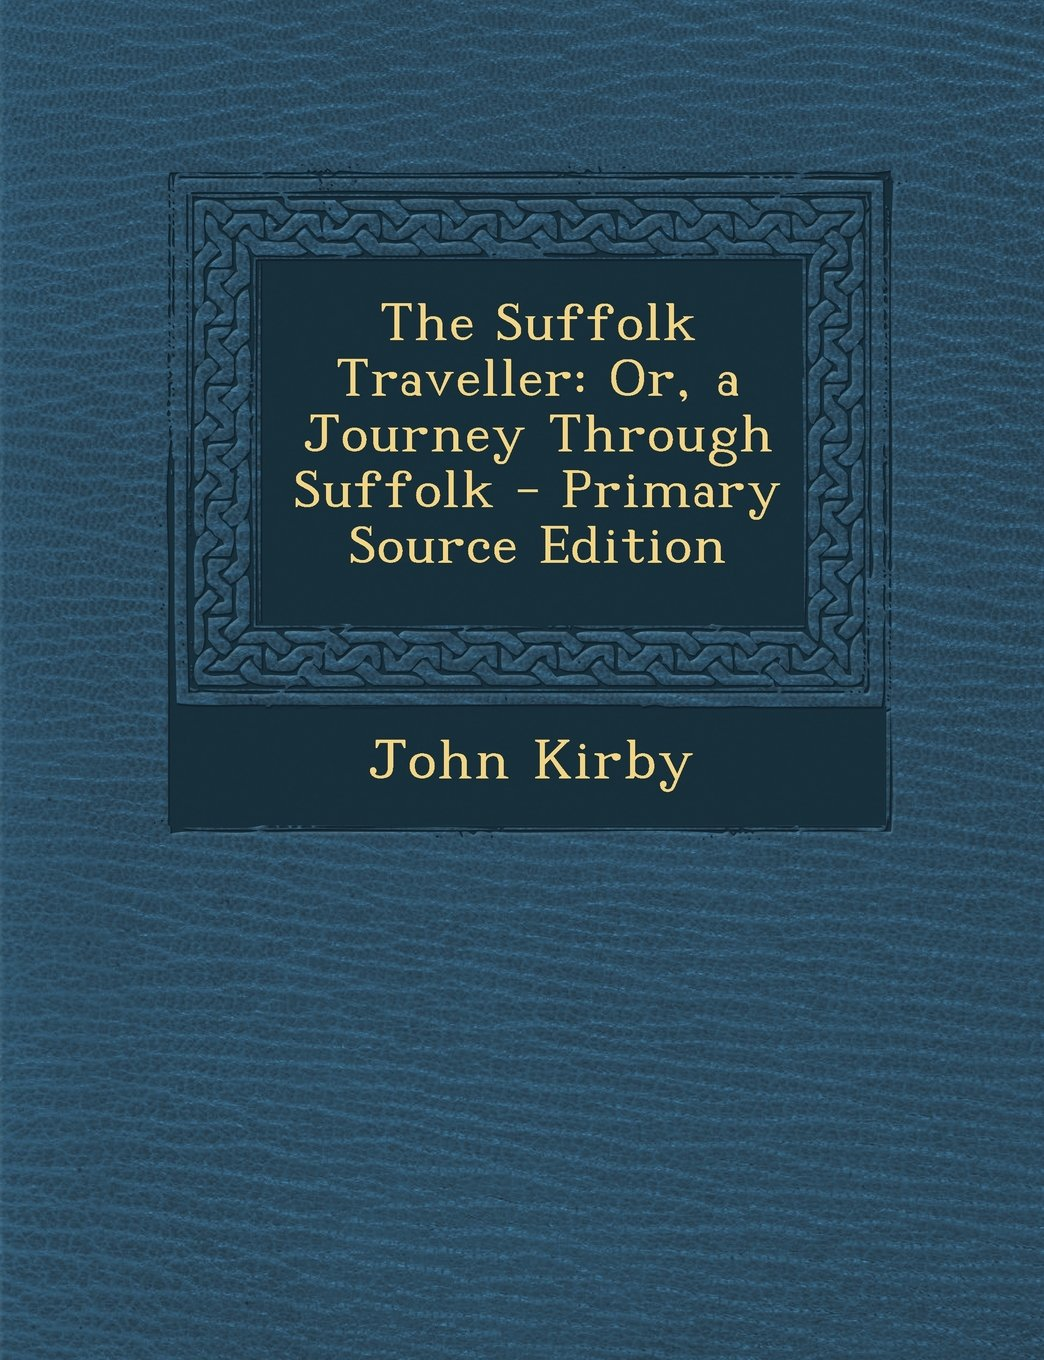 Read Online The Suffolk Traveller: Or, a Journey Through Suffolk - Primary Source Edition PDF